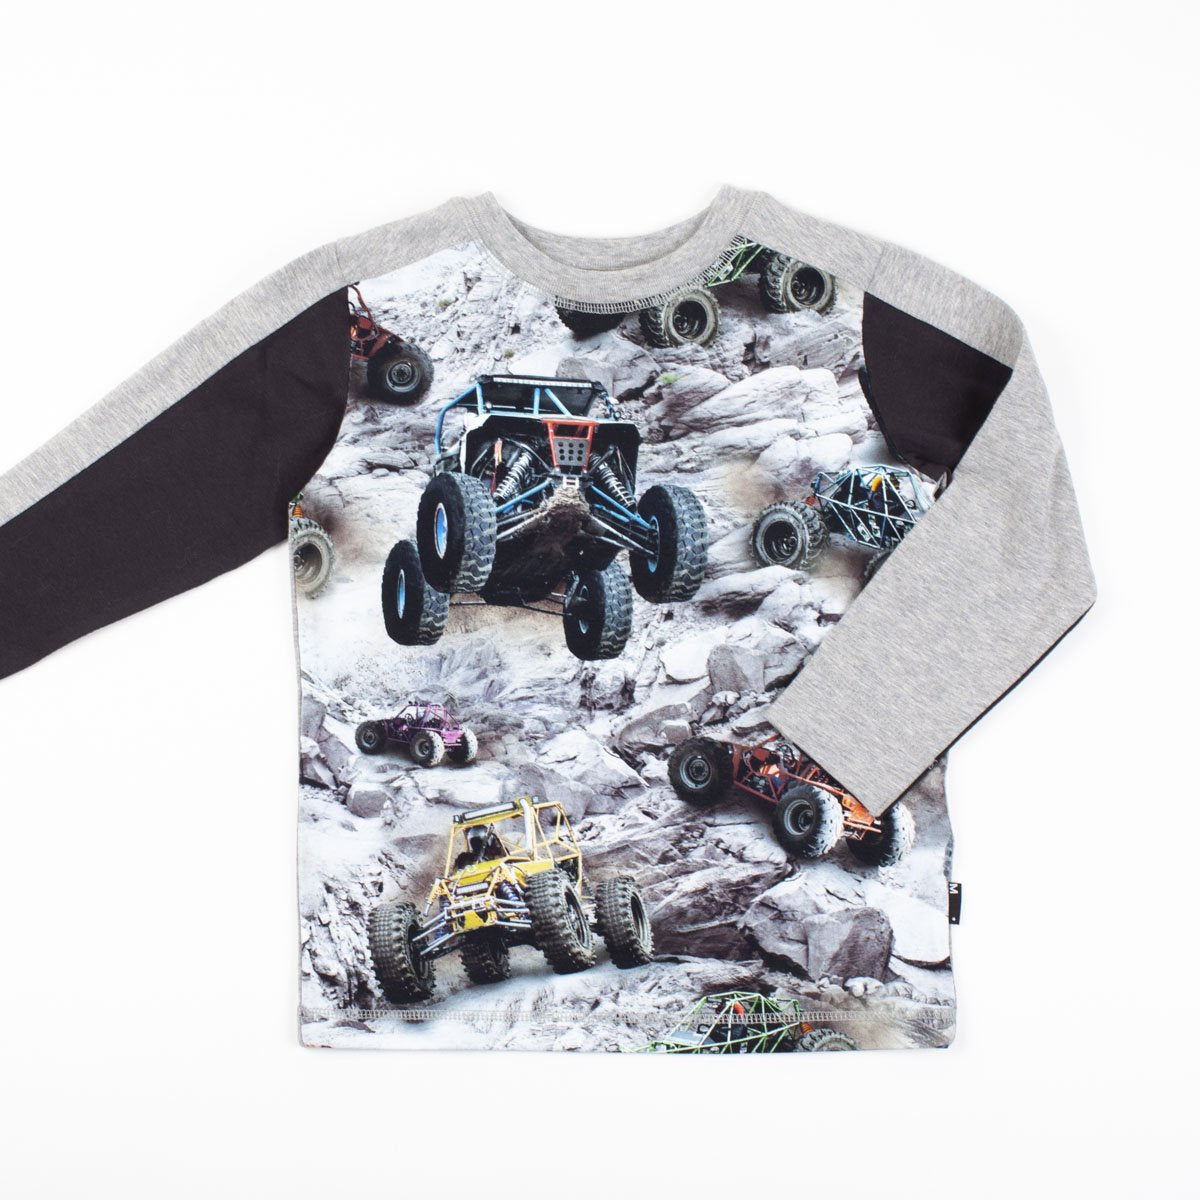 Offroad Buggy Shirt